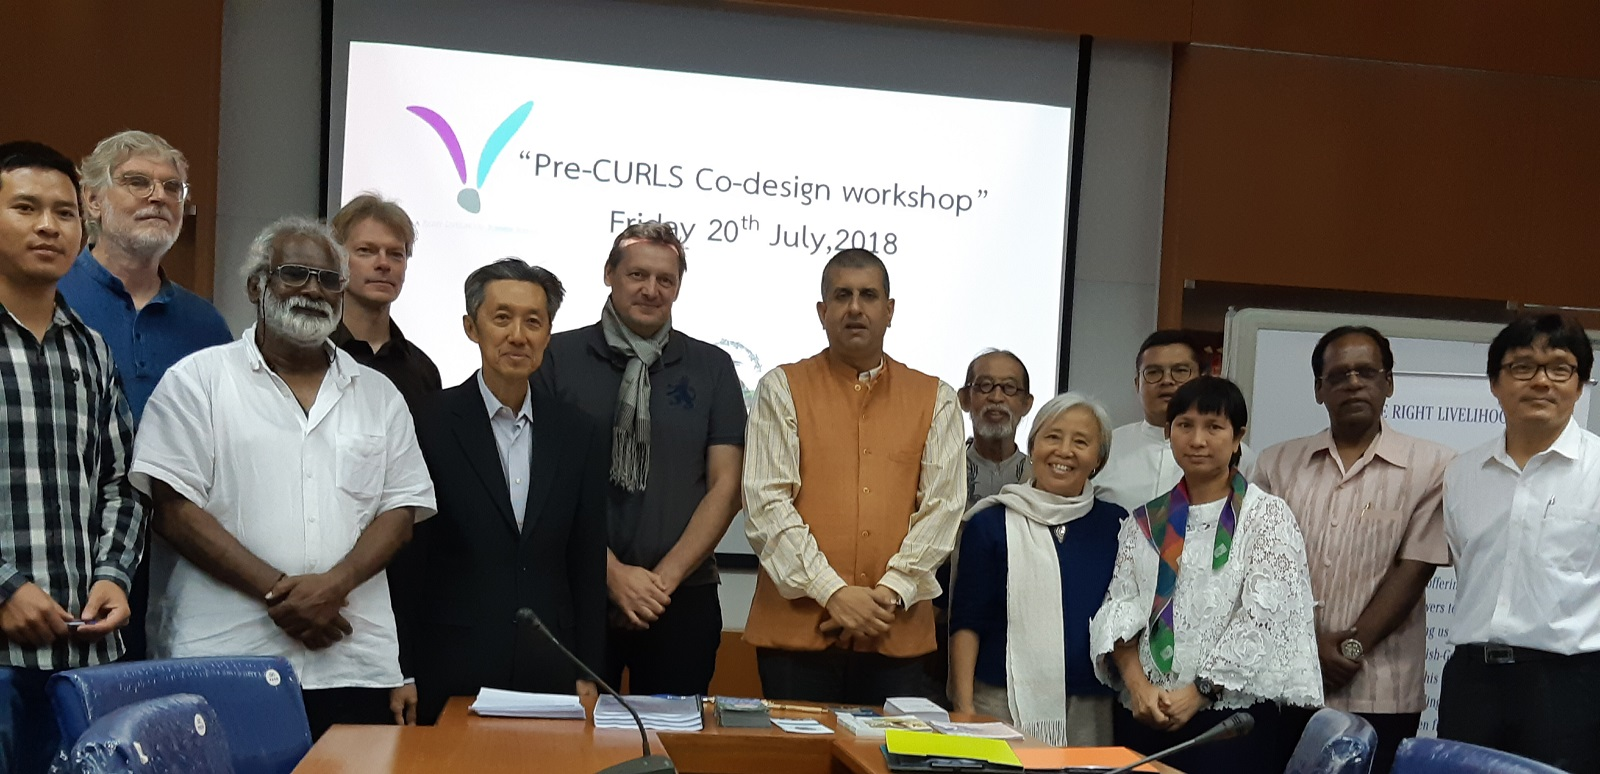 Co-Design workshop held at RLC Campus Bangkok